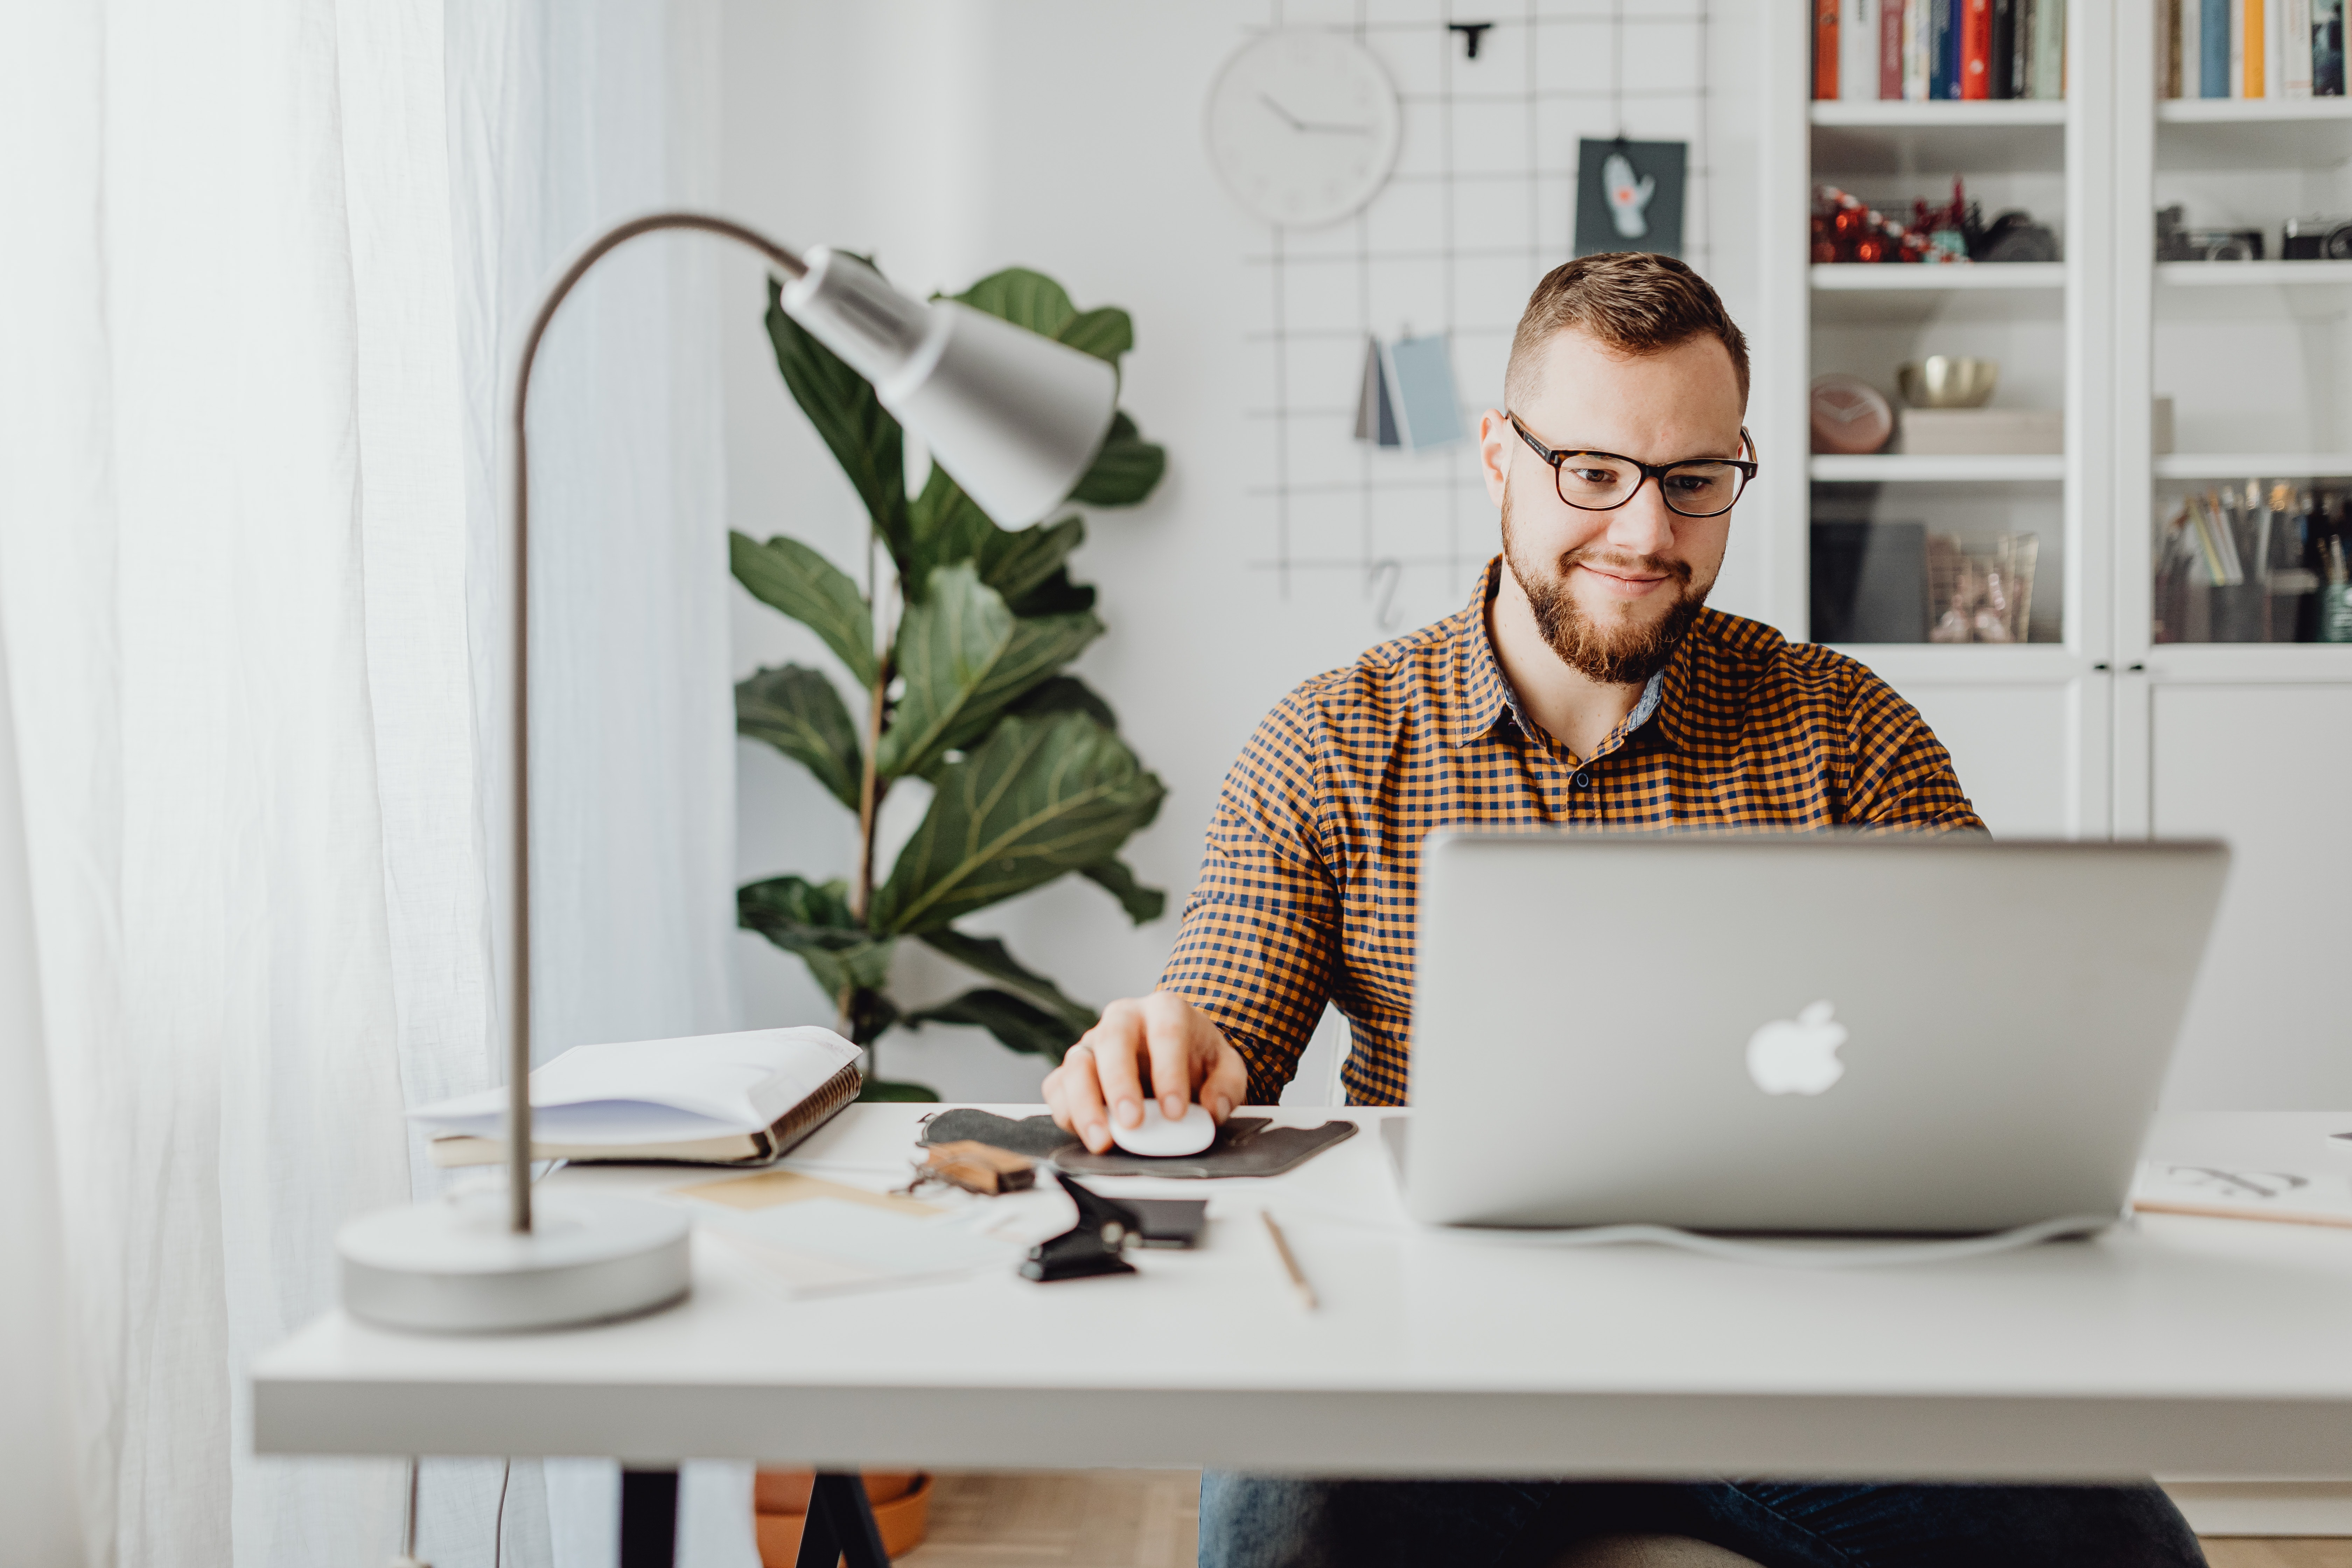 Adult man remote working on computer